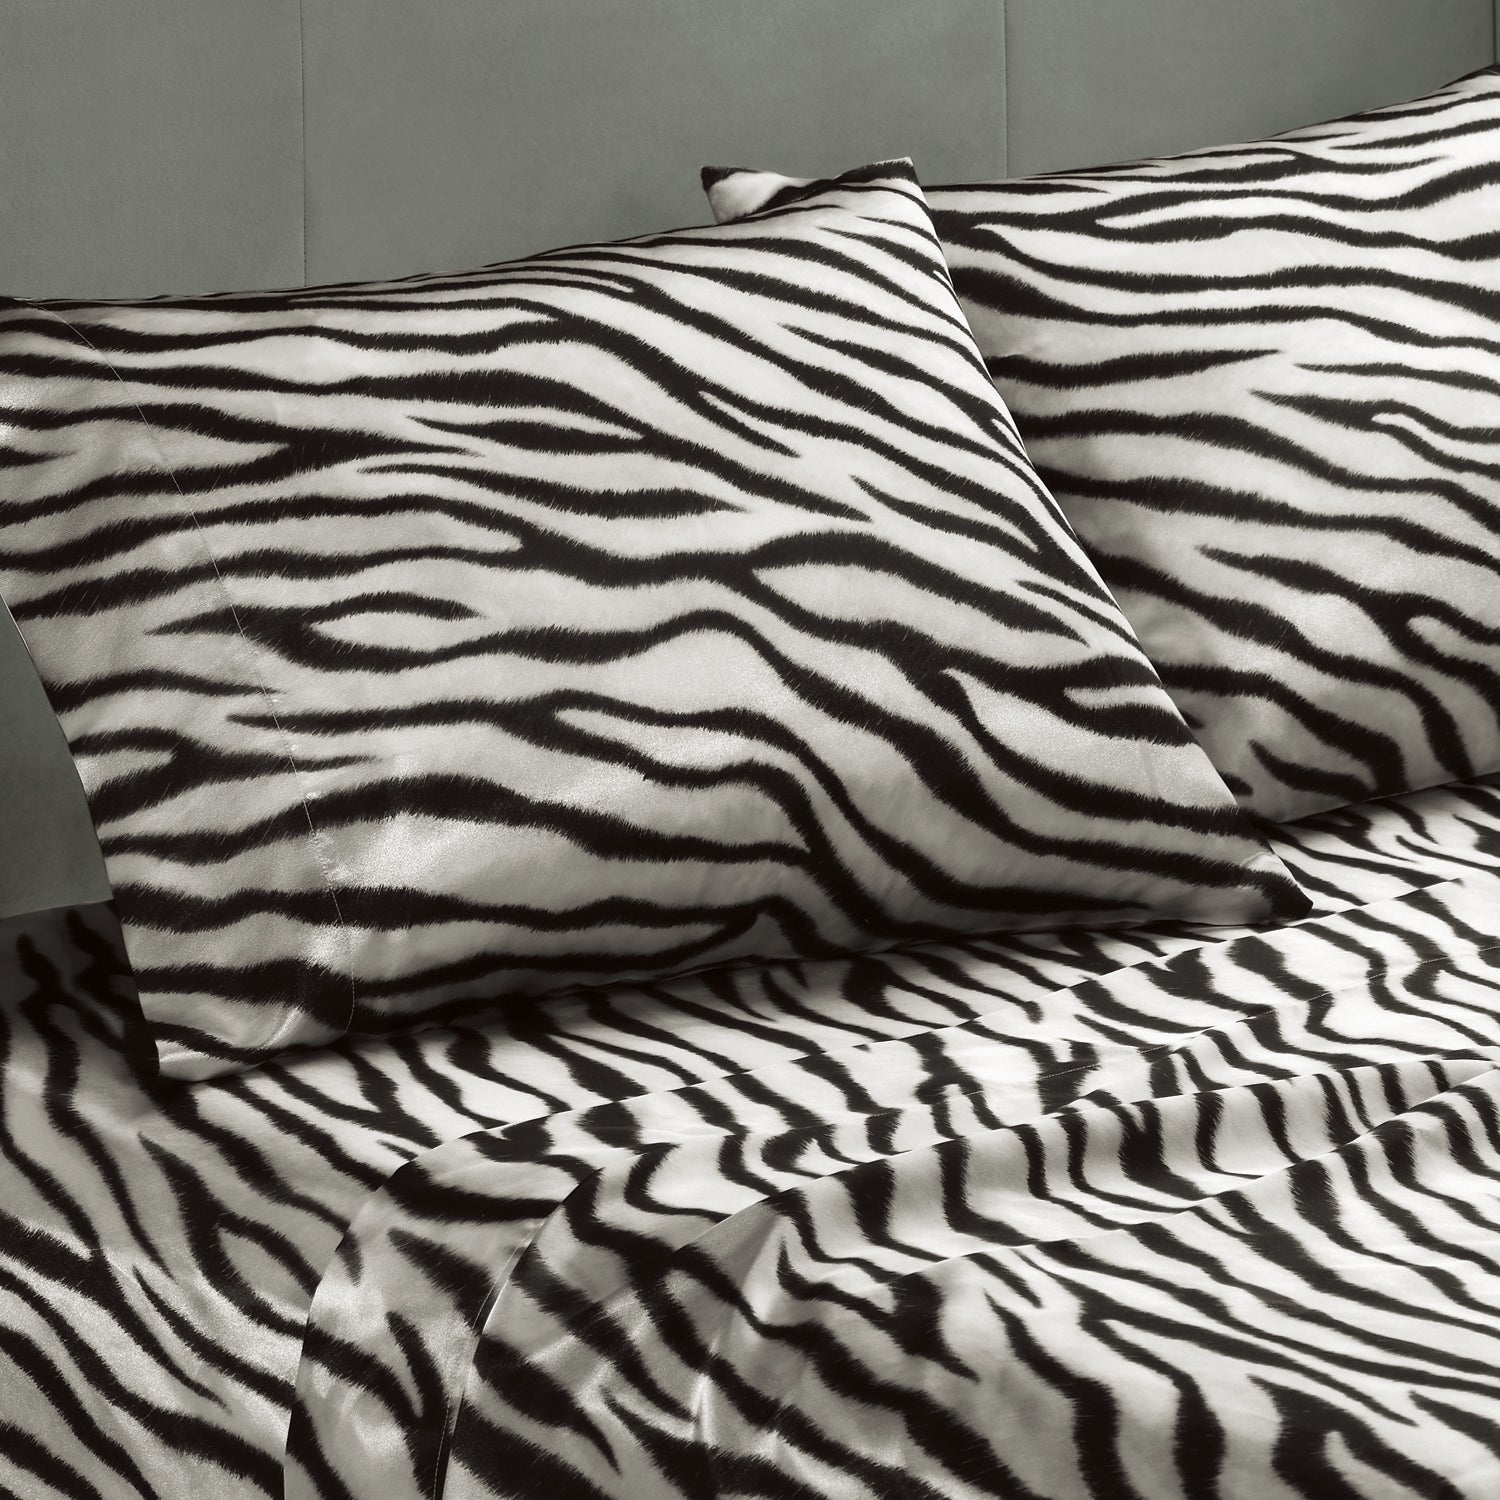 Premier Comfort Zebra Polyester Textured Satin 6-piece King-size Sheet Set